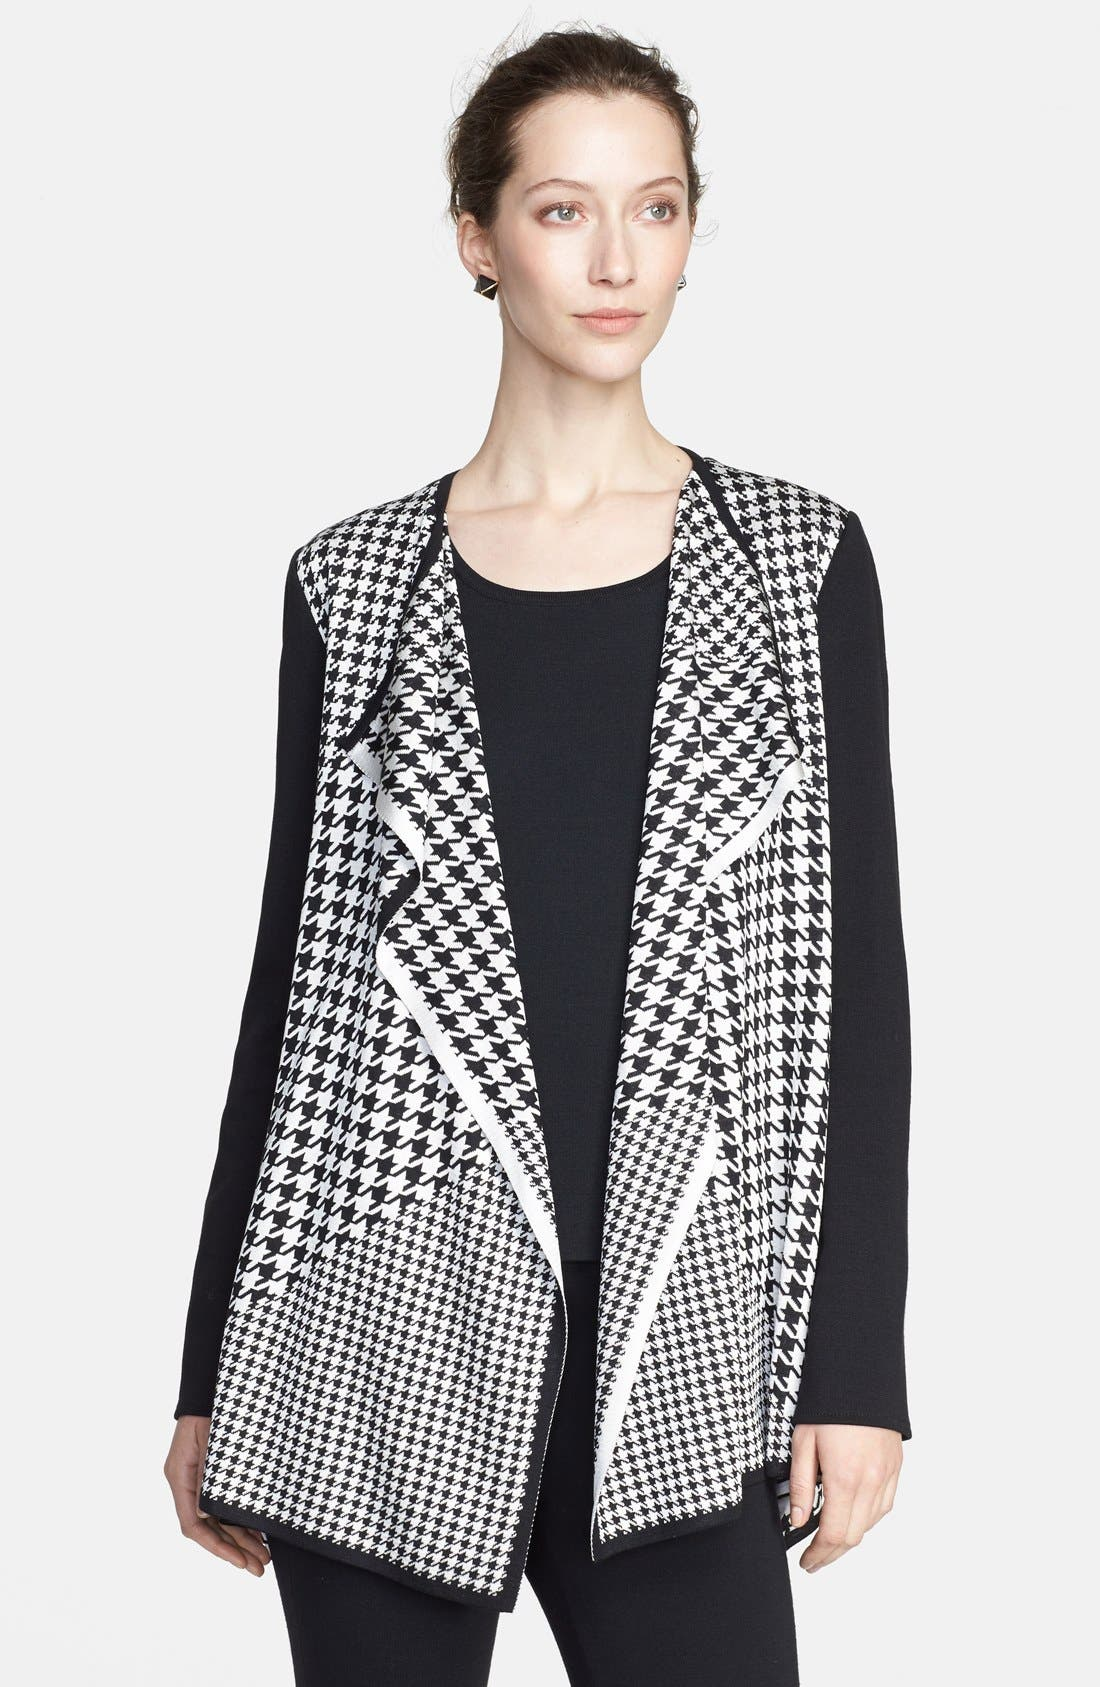 Main Image - St. John Collection Multi Scale Houndstooth Jacquard Knit Cardigan